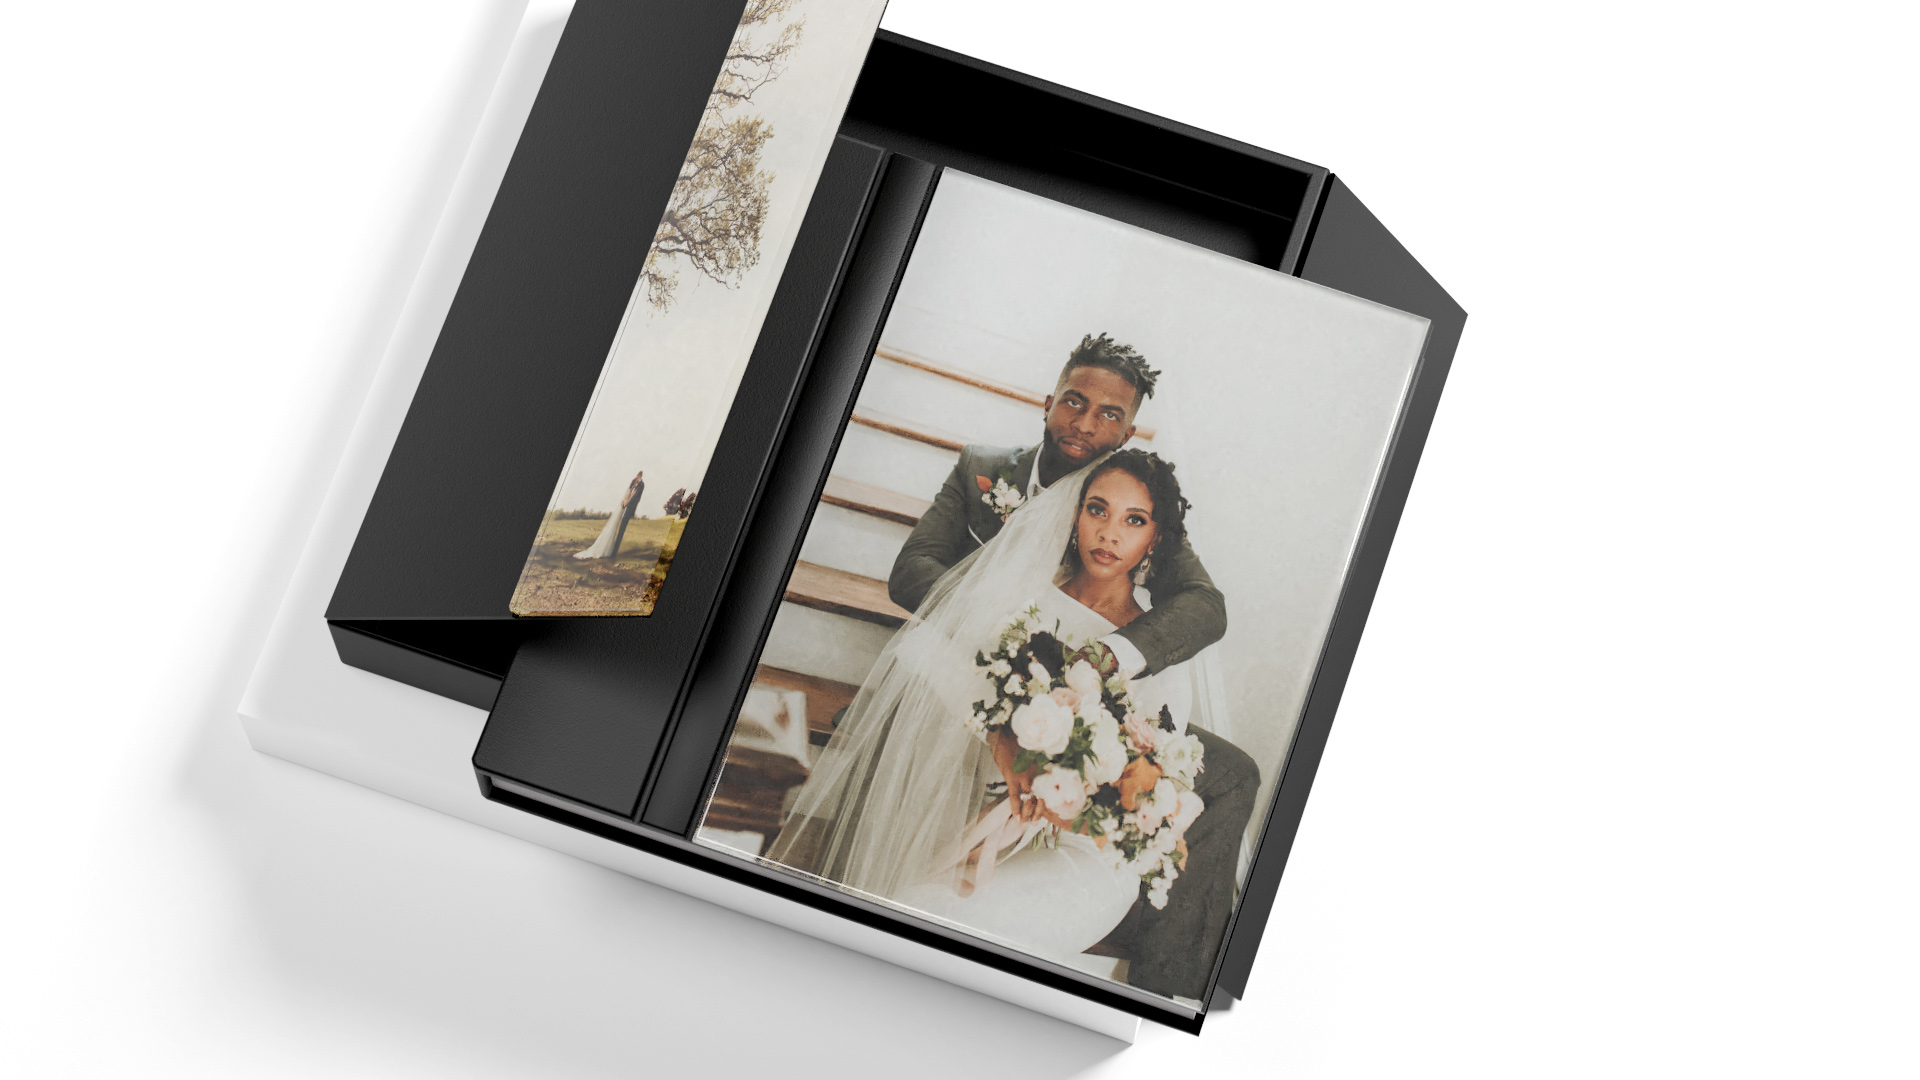 4 Signs You Are Working With the Right Wedding Album Printing Company